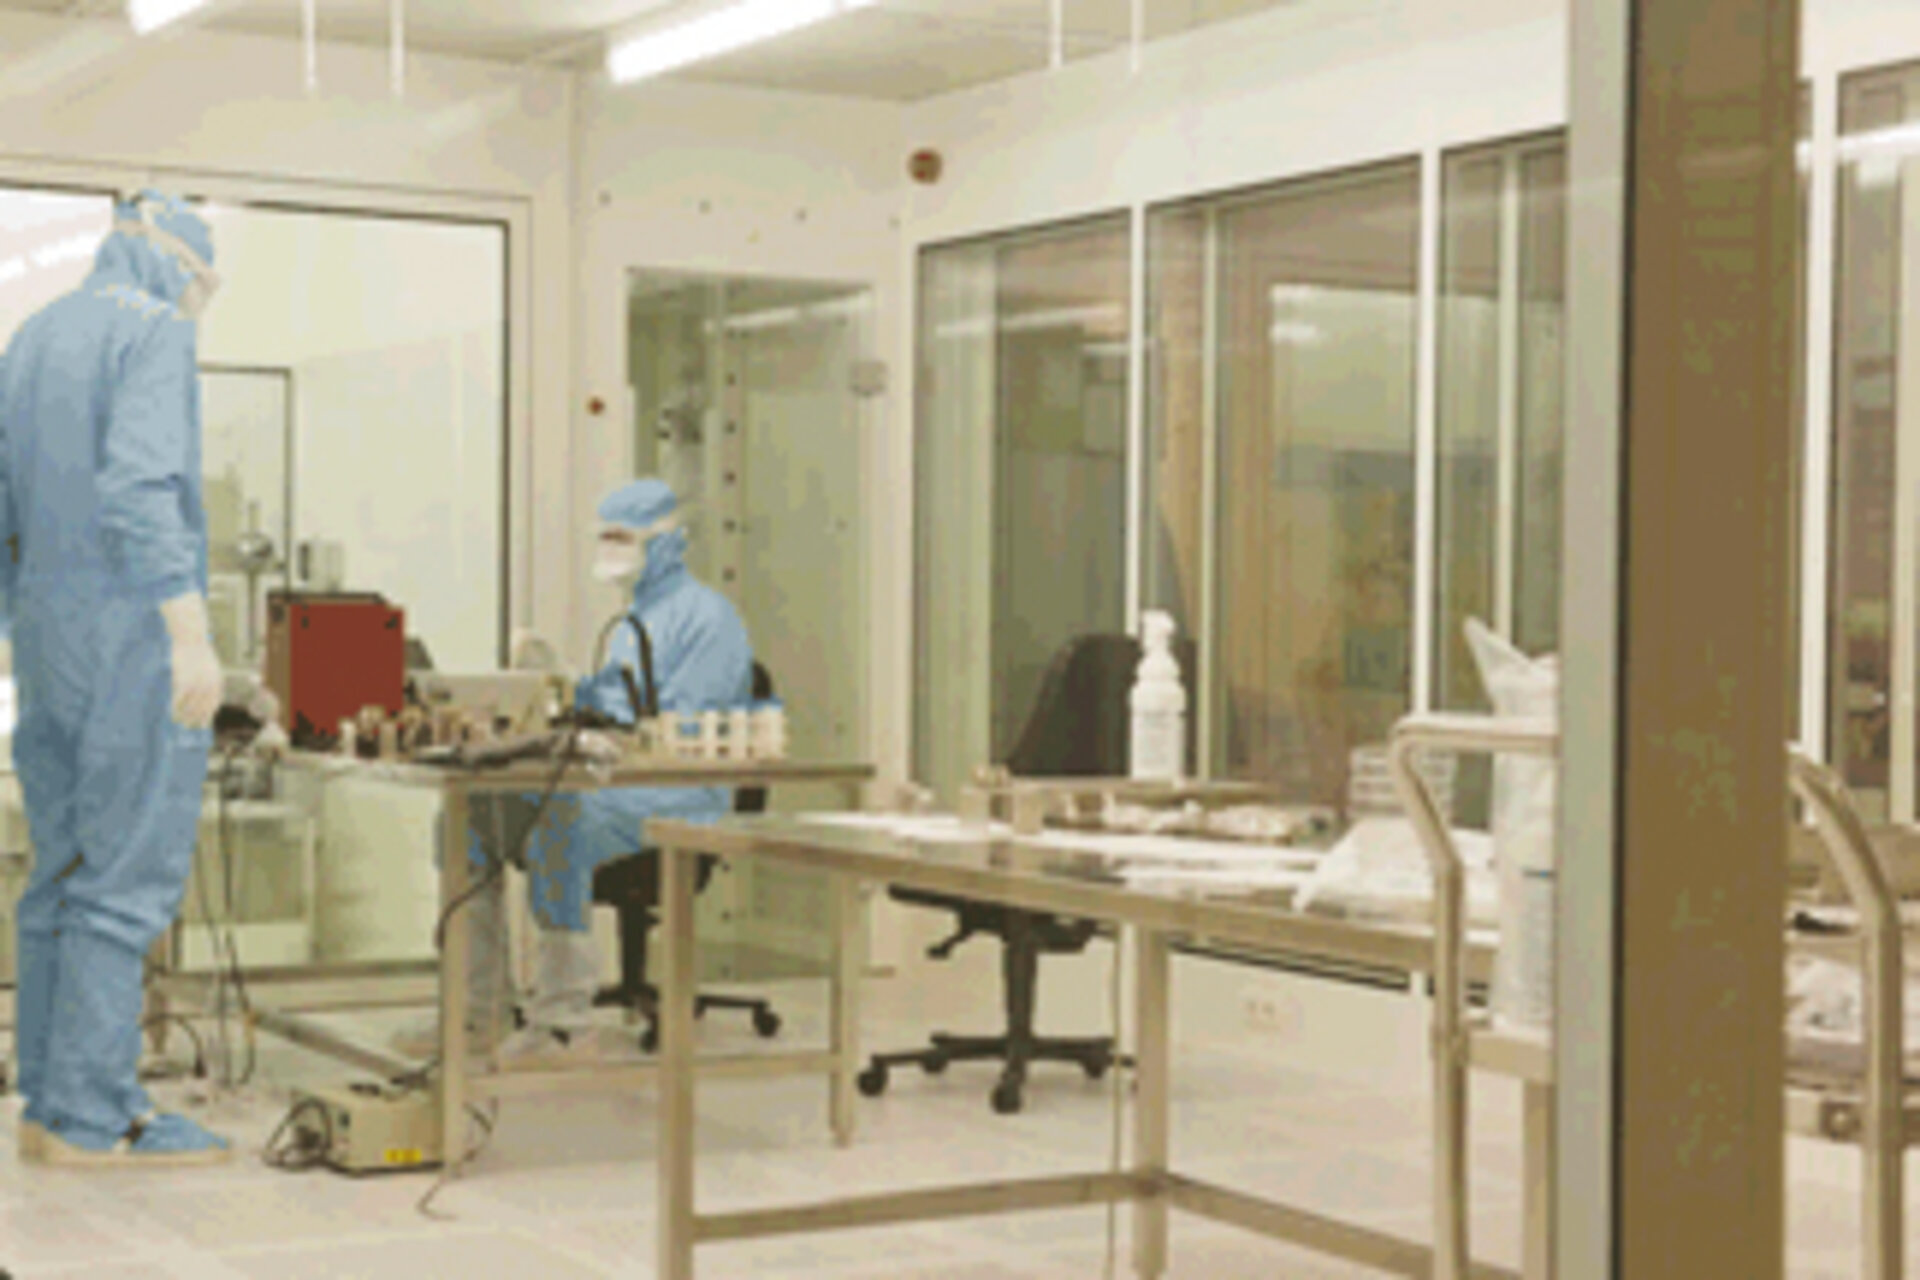 Life Support and Physical Sciences Laboratory